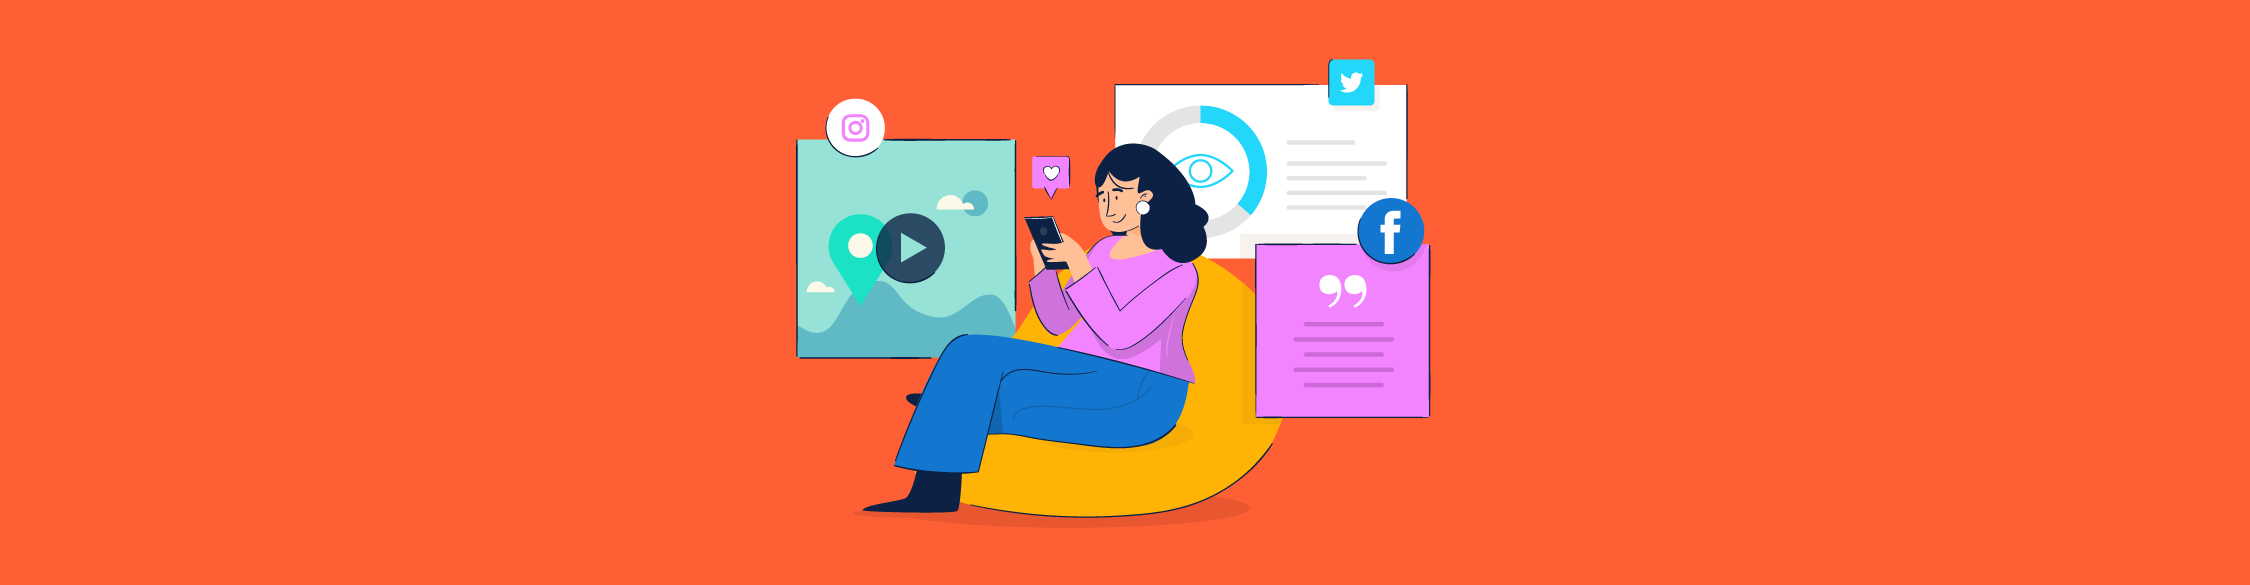 Social Media Content: 10 Types to Get You More Engagement